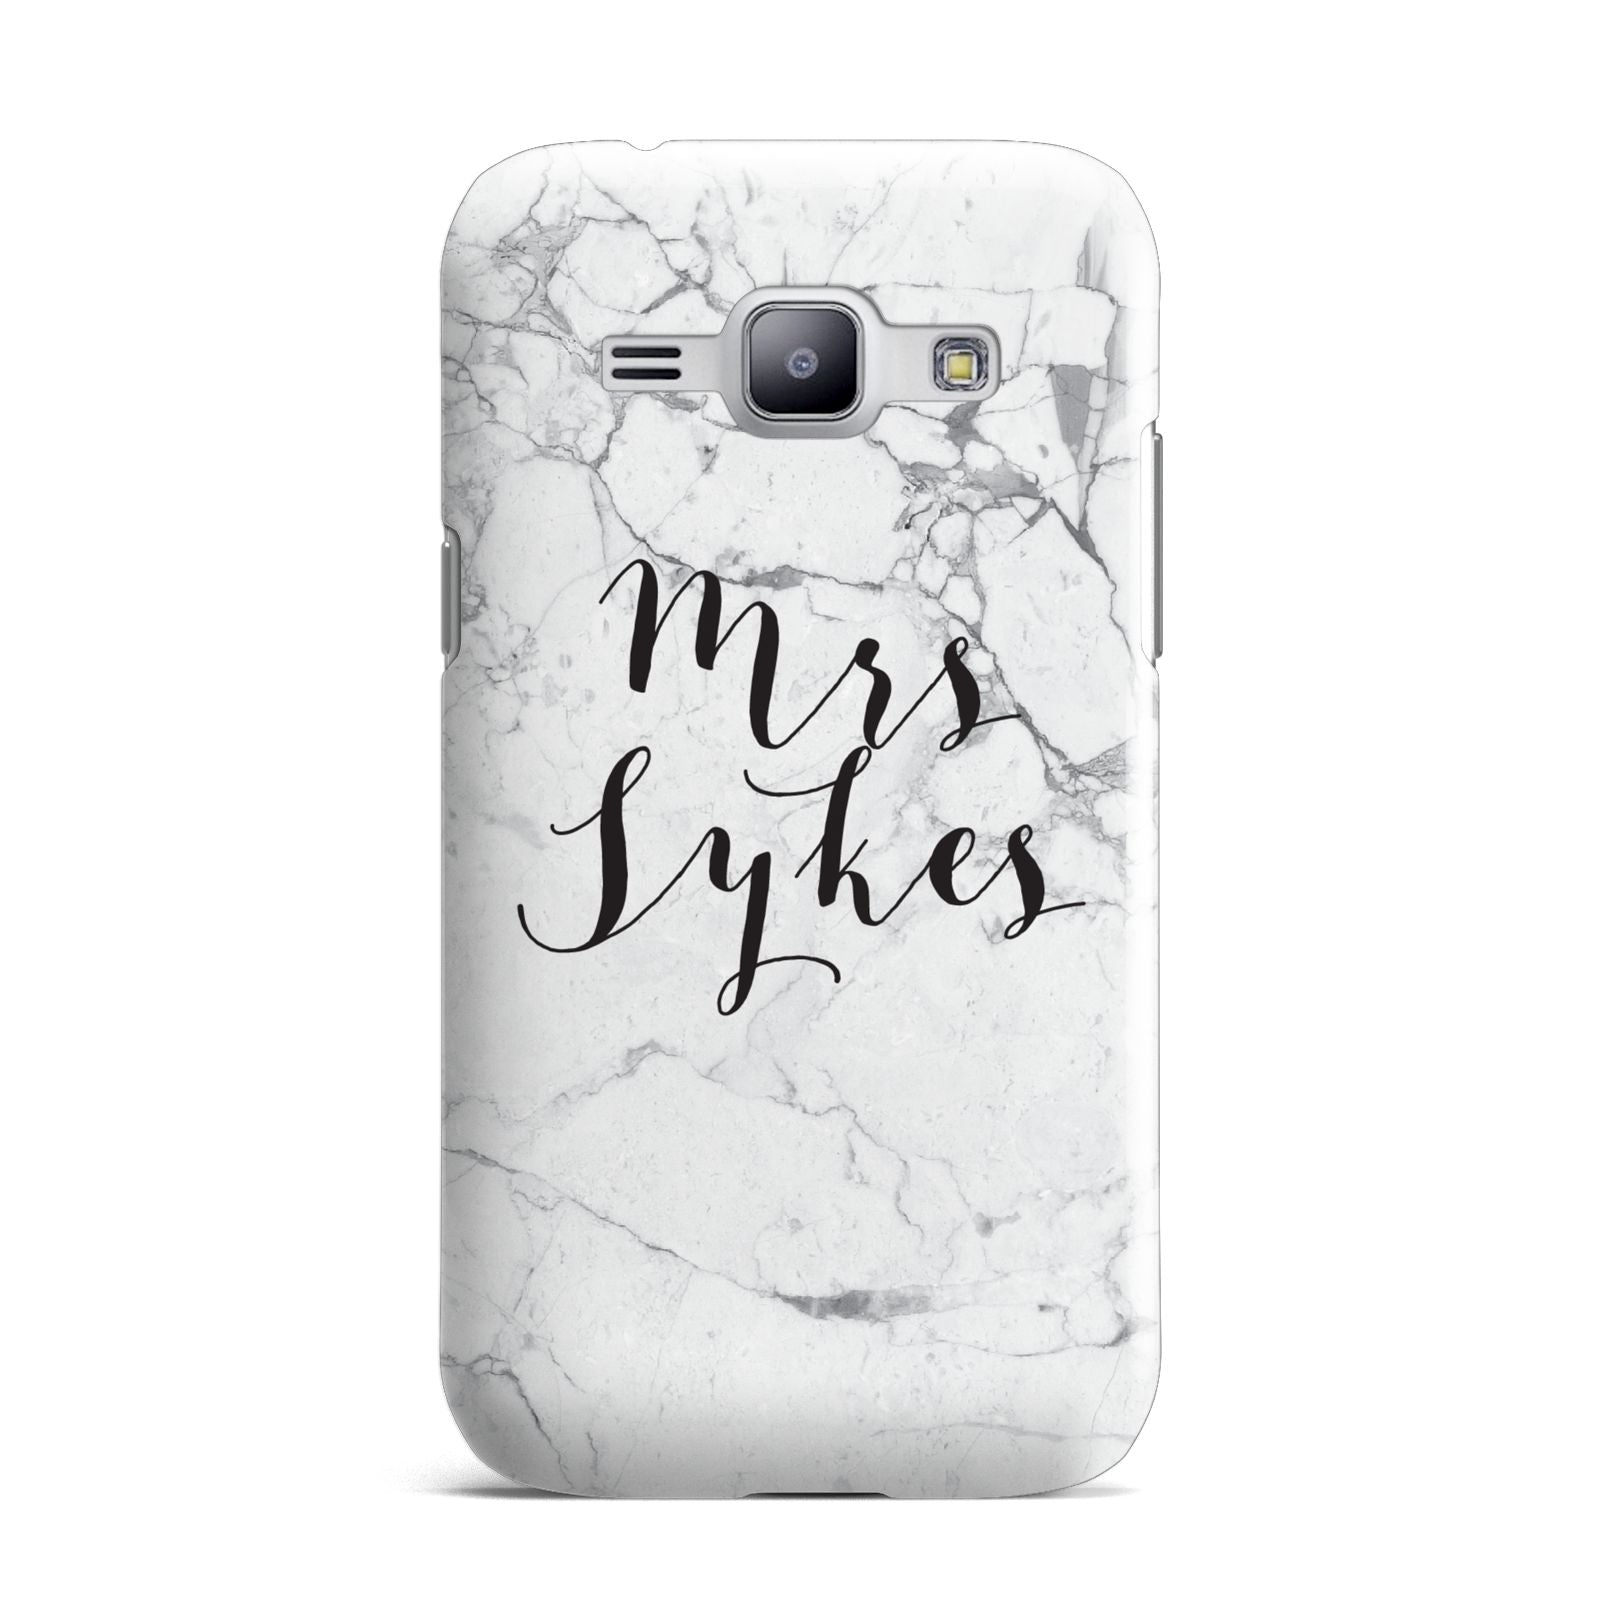 Surname Personalised Marble Samsung Galaxy J1 2015 Case